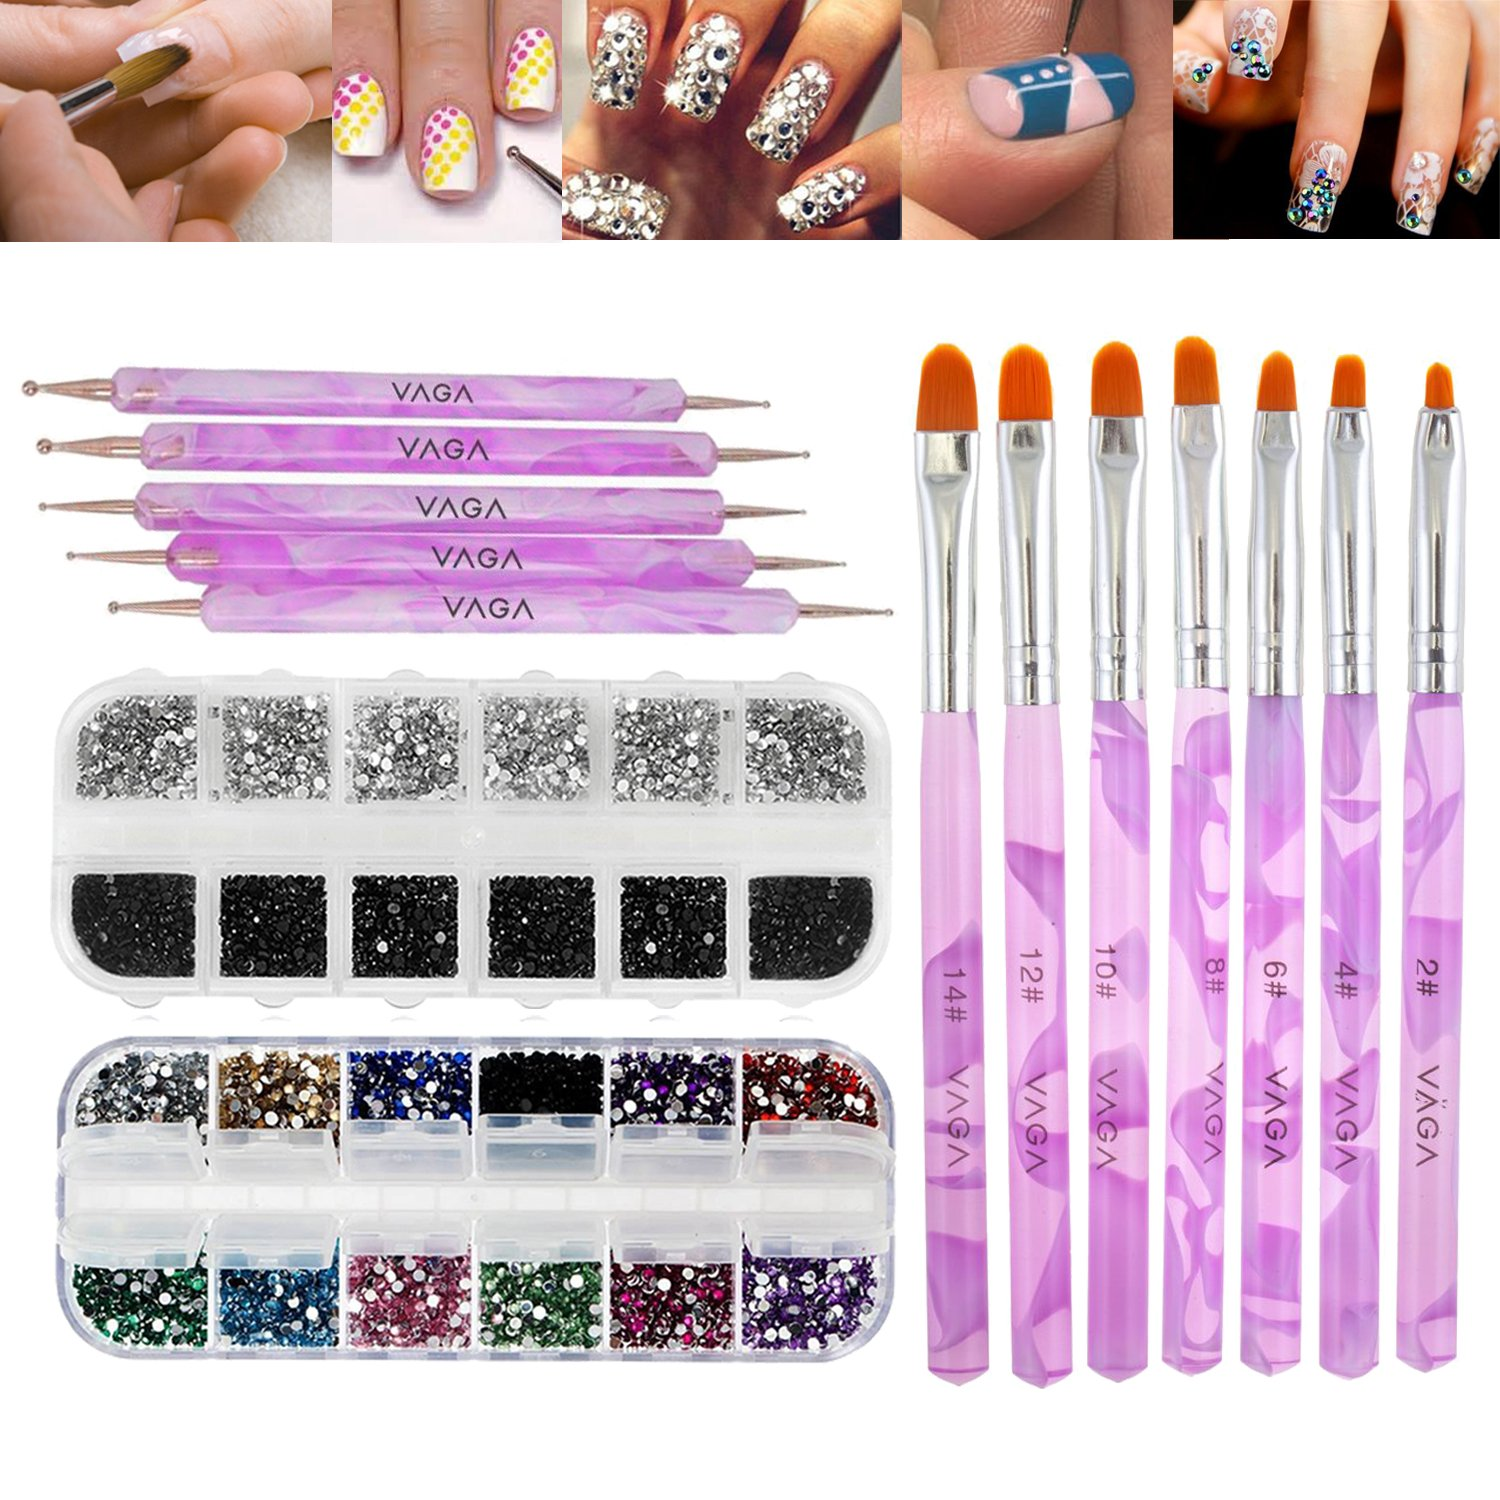 Great Value Premium Quality Professional Nail Art Accessories Set Kit With 5 Purple Double Ended Dotting / Marbling Tools / Dotters, 7 Purple Brushes / Stripers / Liners, 3000pcs Mixed Colours Rhinestones In Case And 2000pcs 2mm Round Black And Silver Crys